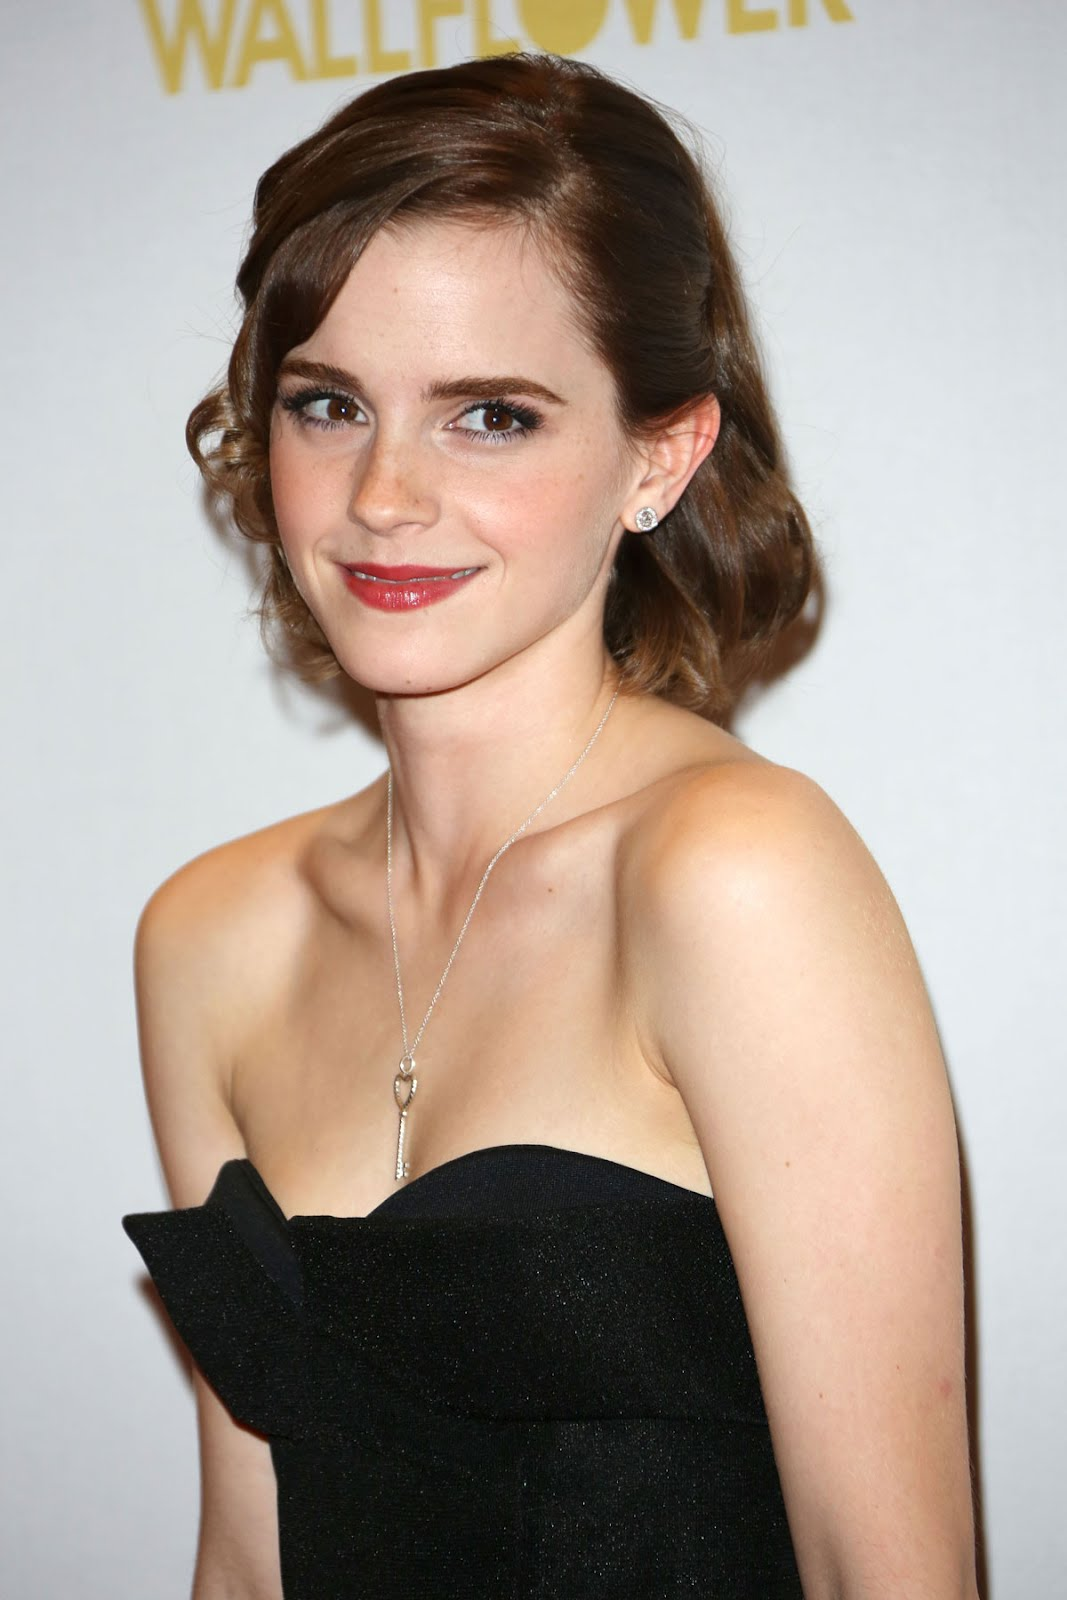 http://2.bp.blogspot.com/-gea7NNDWd-w/UGW-YHR2HzI/AAAAAAAACiI/QWNVhxGaJE8/s1600/EMMA-WATSON-at-Perks-of-Being-a-Wallflower-Premiere-in-London-00.jpg